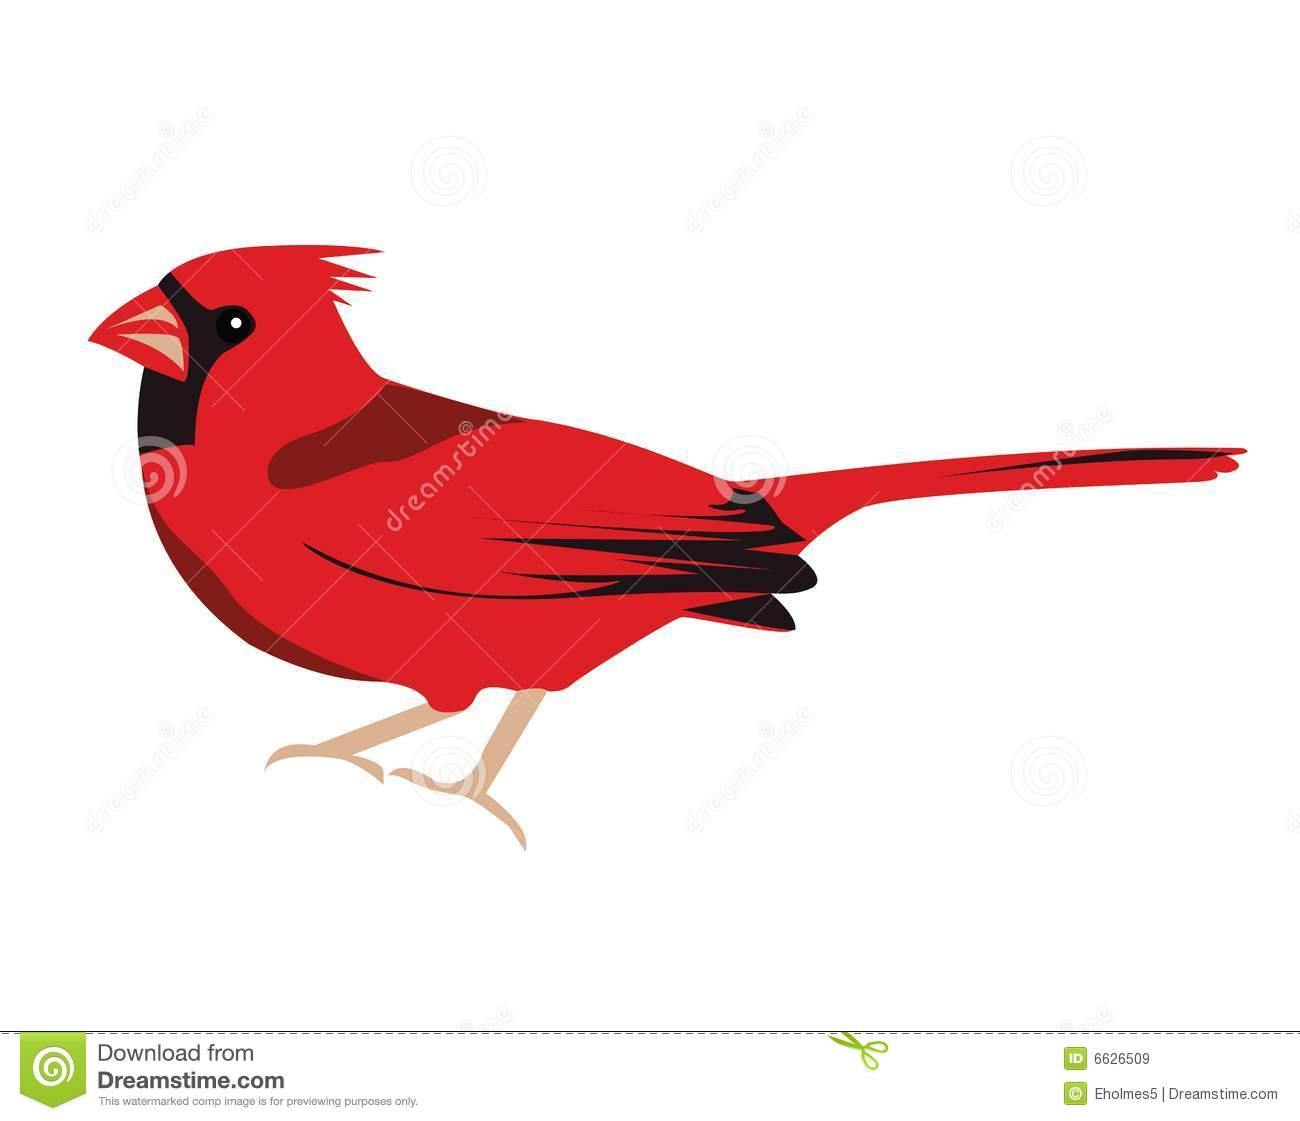 Cardinal clipart illustration. Free download best on